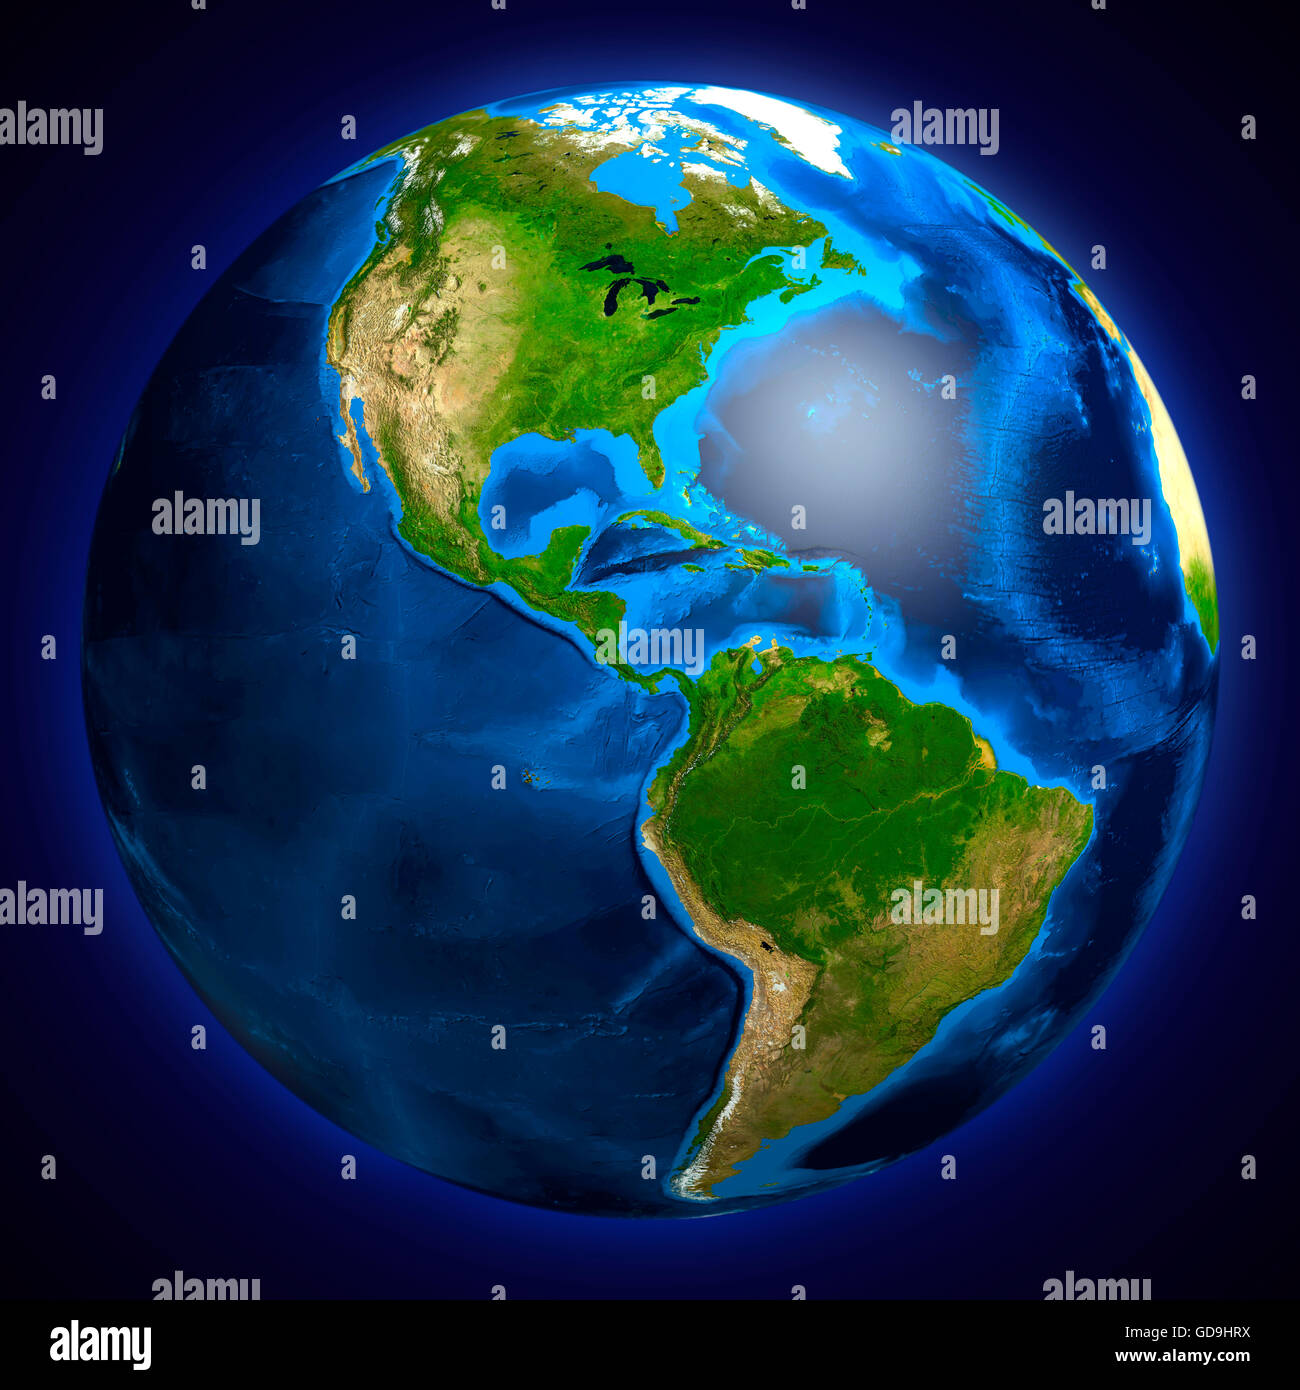 Earth globe showing South and North American continents, 3D illustration - Stock Image